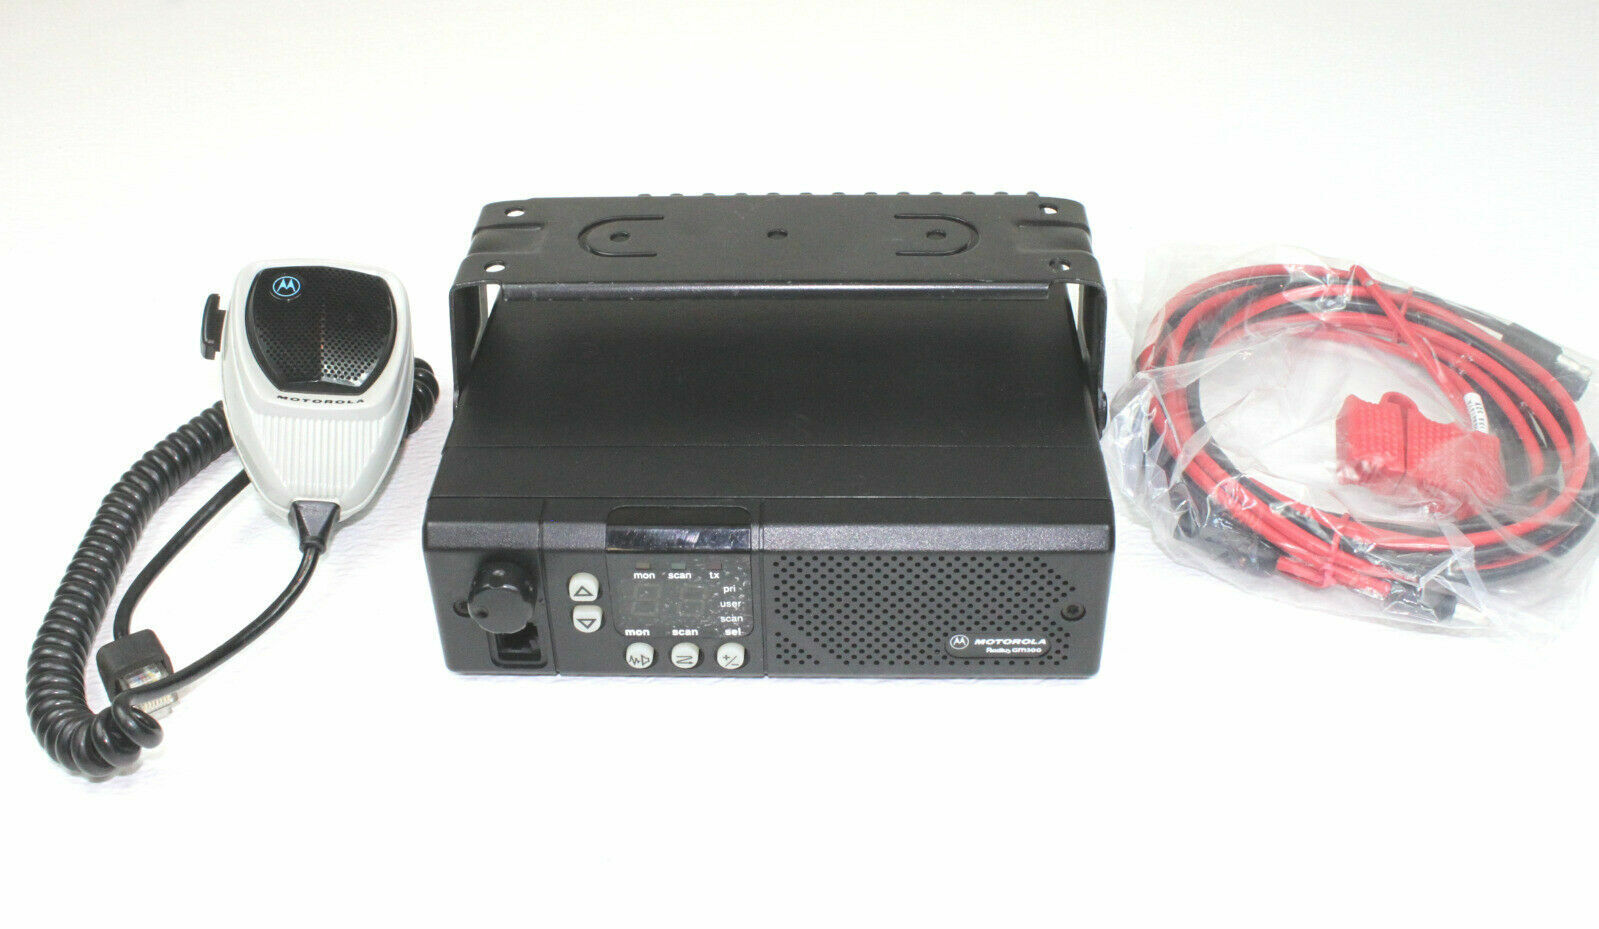 Motorola GM300 UHF 438-470 Mhz 16 Ch 25 Watts Mobile Radio COMPLETE. Available Now for 79.95